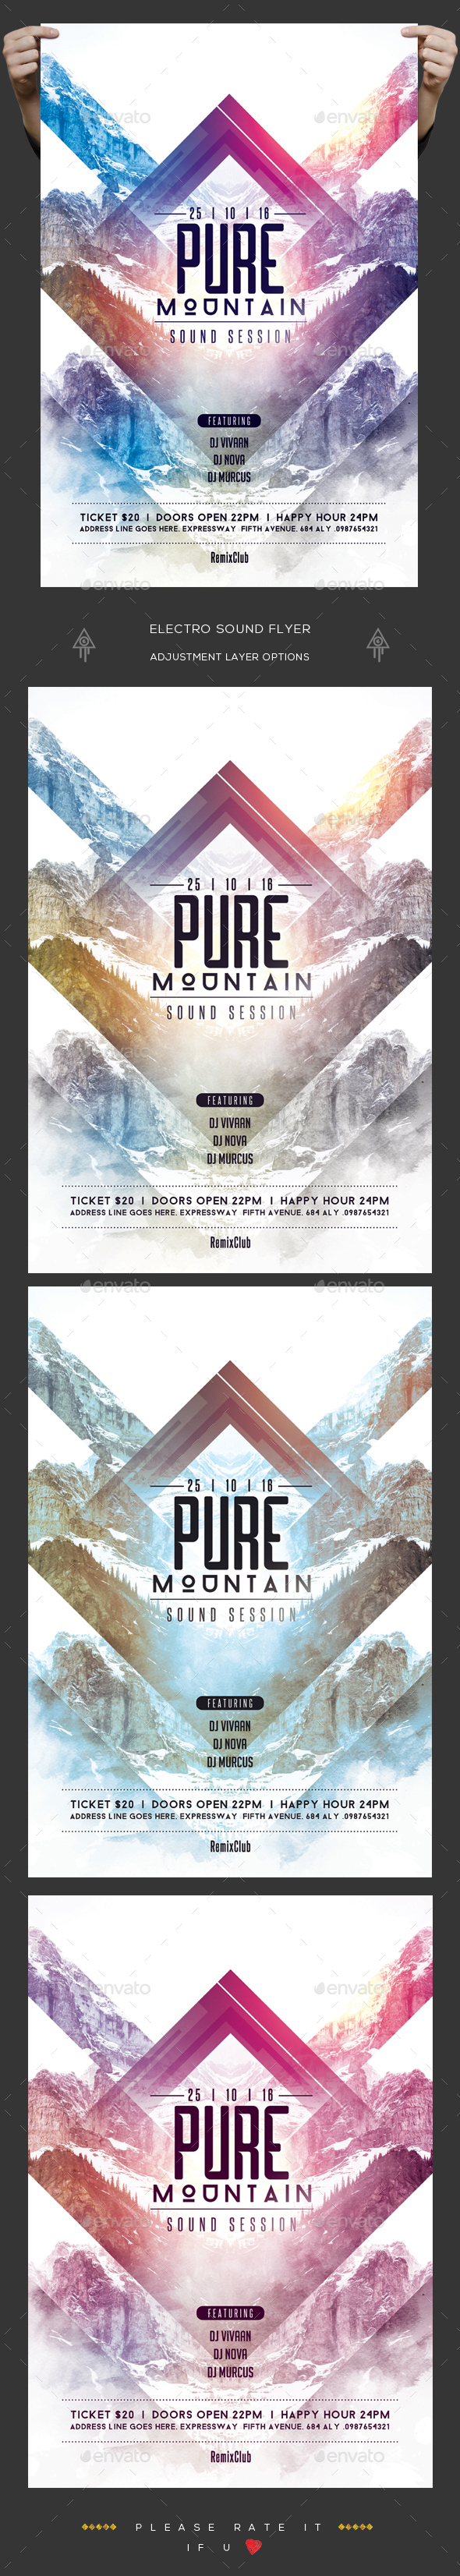 Pure Sound Session Flyer - Clubs & Parties Events